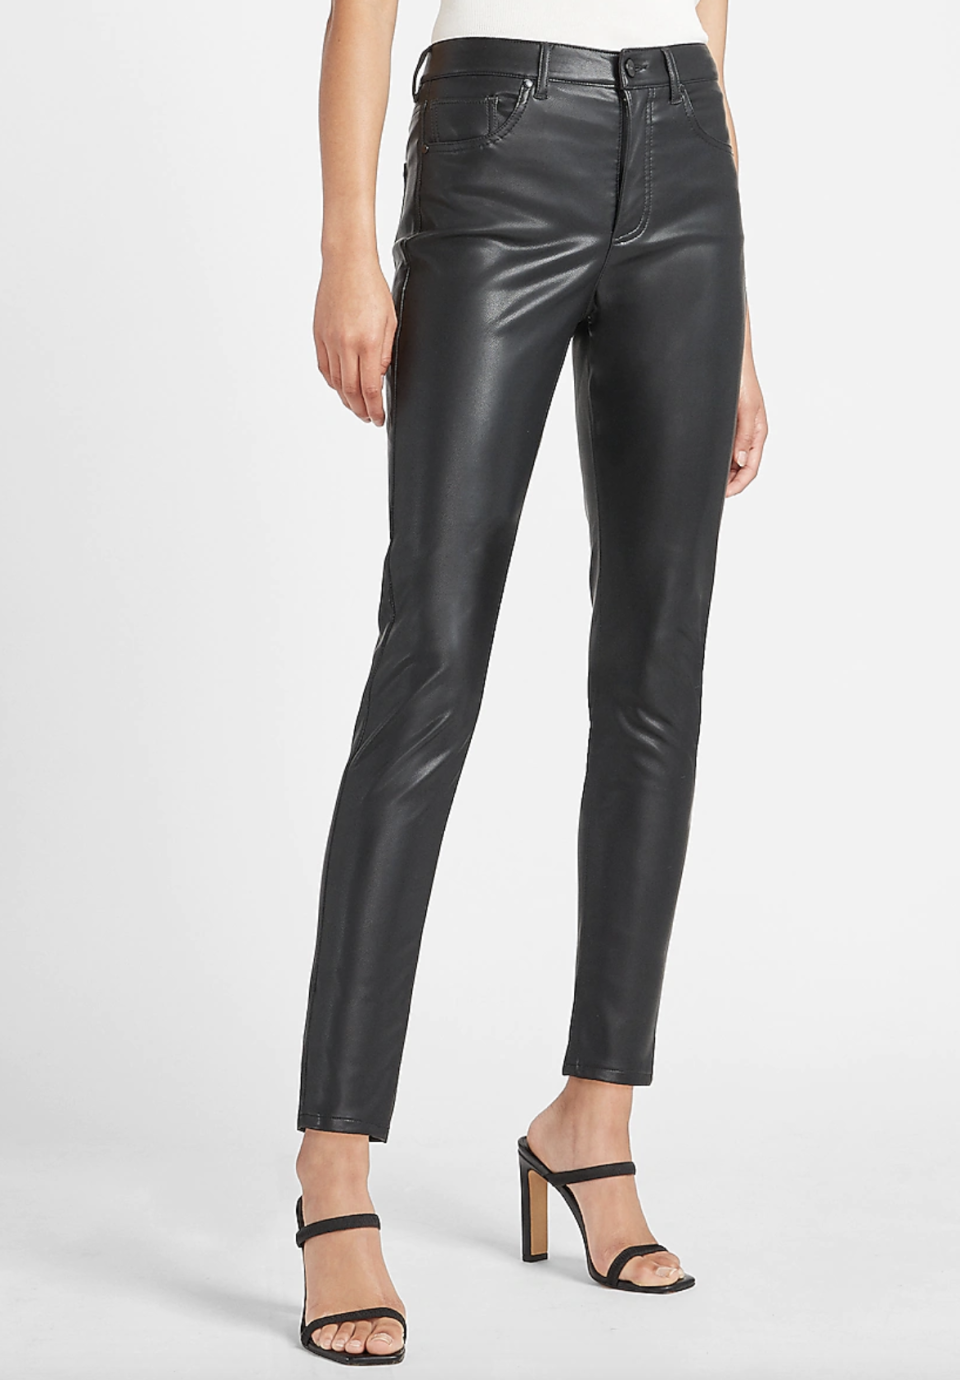 Express High Waisted Vegan Leather Skinny Ankle Pant , $40 (originally $80)